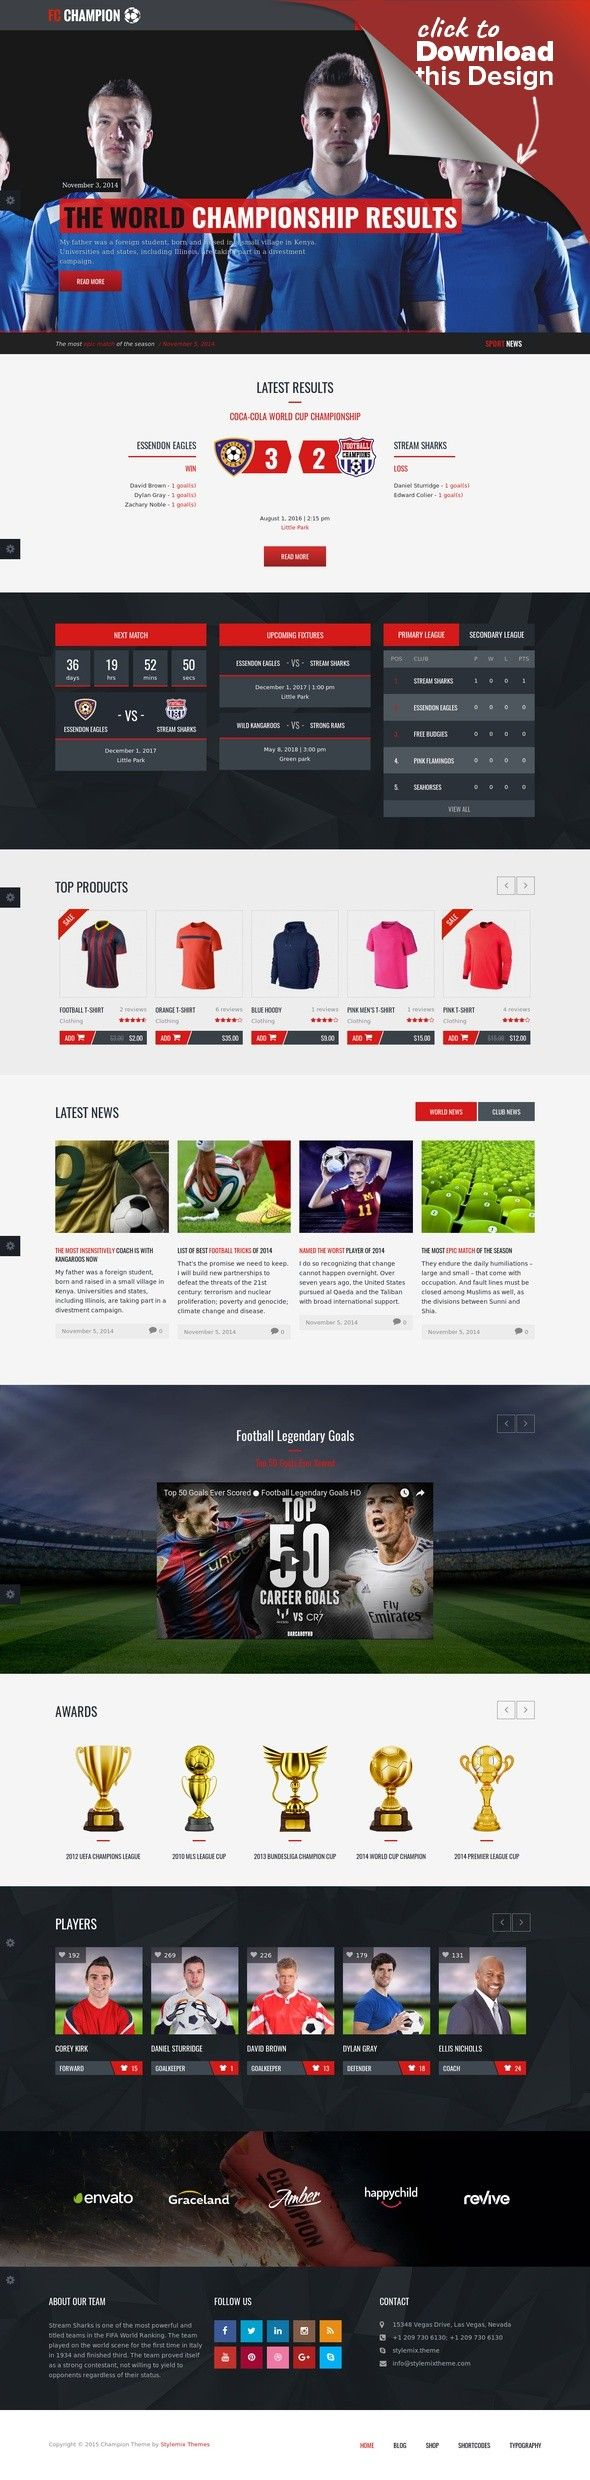 Champion - Soccer & Football WordPress Theme champion, club, events, fixtures, football, league, match, responsive, soccer, sport, sport club, table, wp Champion is the best template for Football & Soccer related website. Champion was created especially for sport clubs, football clubs, soccer news and sport organizations. The responsive layout is designed based on the Bootstrap 3.1 standards. Please note photos & images are not inclu...